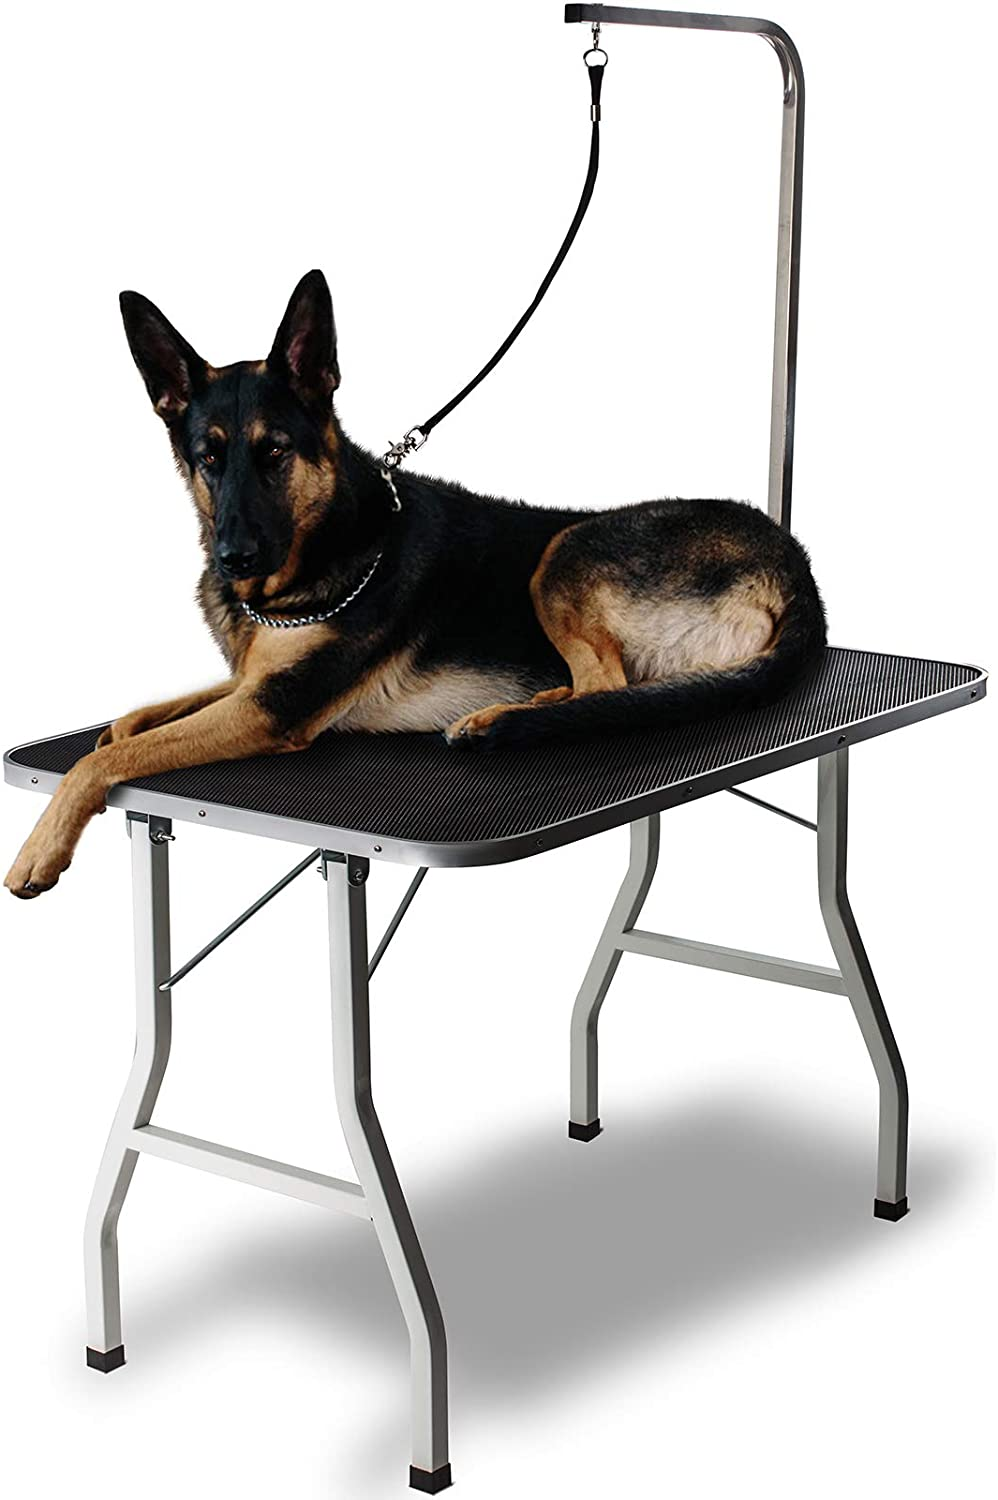 GROOMING TABLE FOR DOG